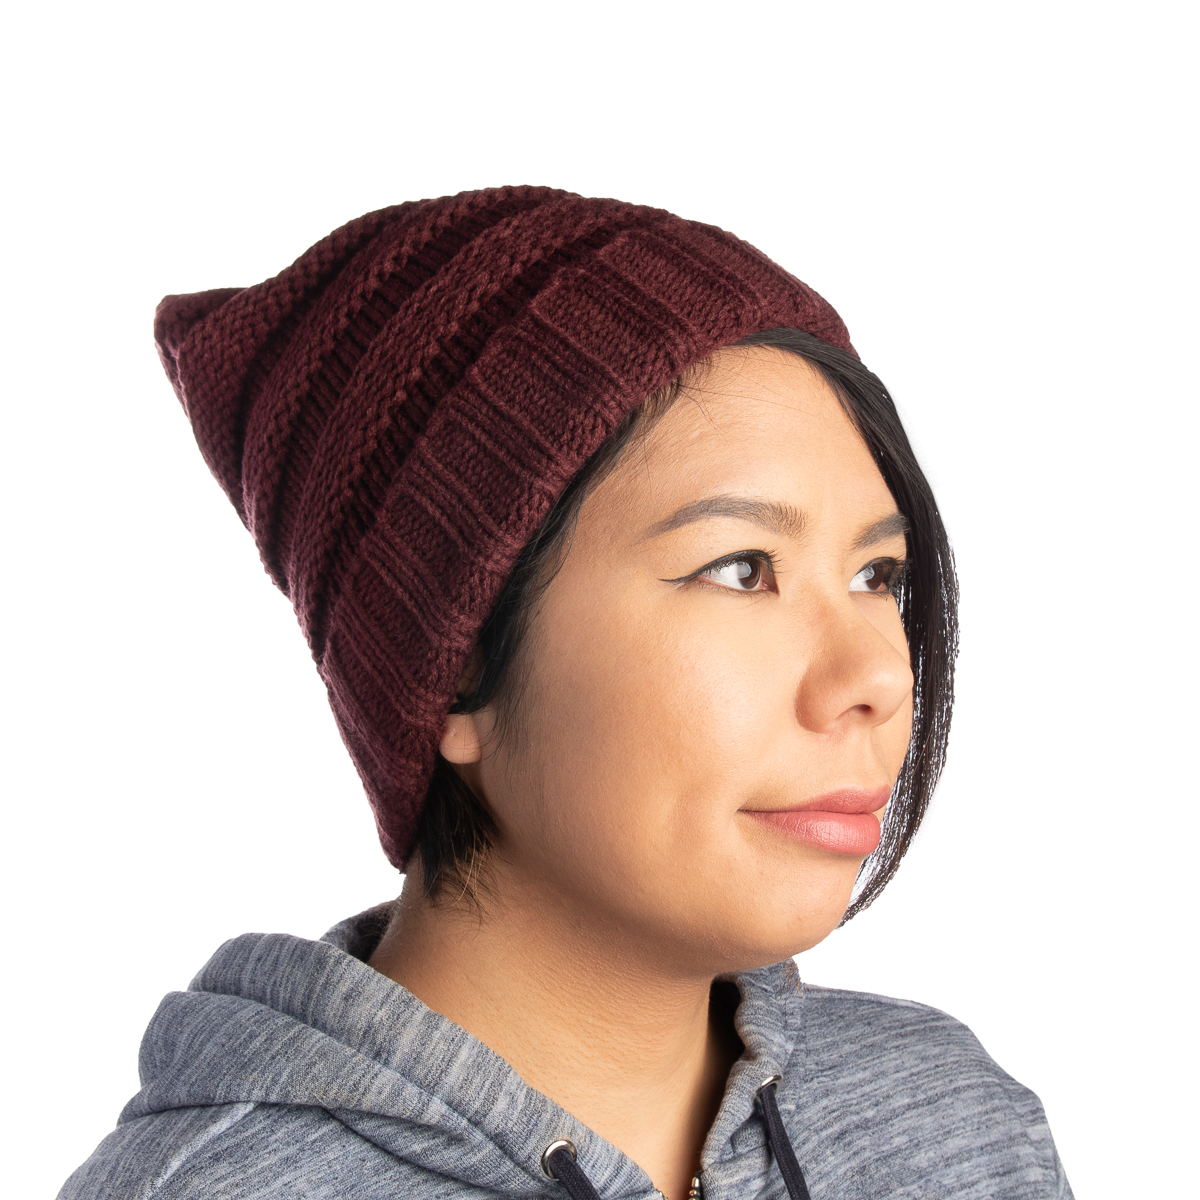 Womens-Slouchy-Ribbed-Knit-Chunky-Beanie-Winter-Hat-Warm-Cute-Lightweight-Chic thumbnail 20